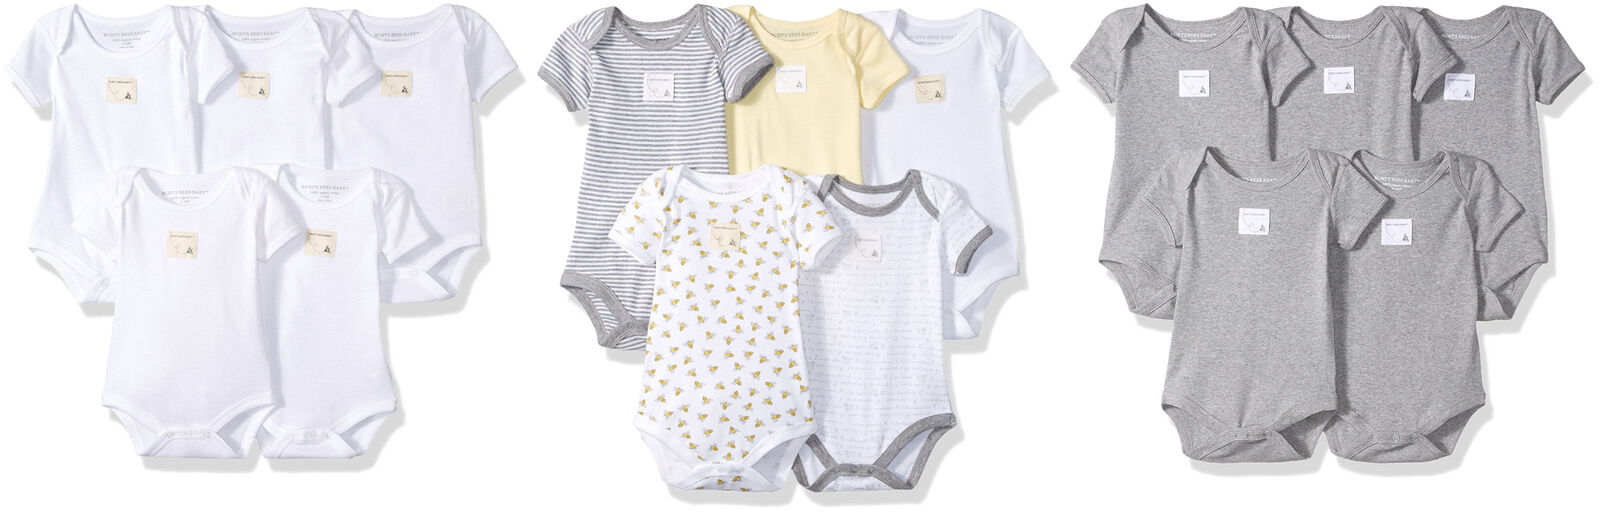 67b576d1f Burt's Bees Baby Set of 5 Bee Essentials Short Sleeve Bodysuits, 7 Colors